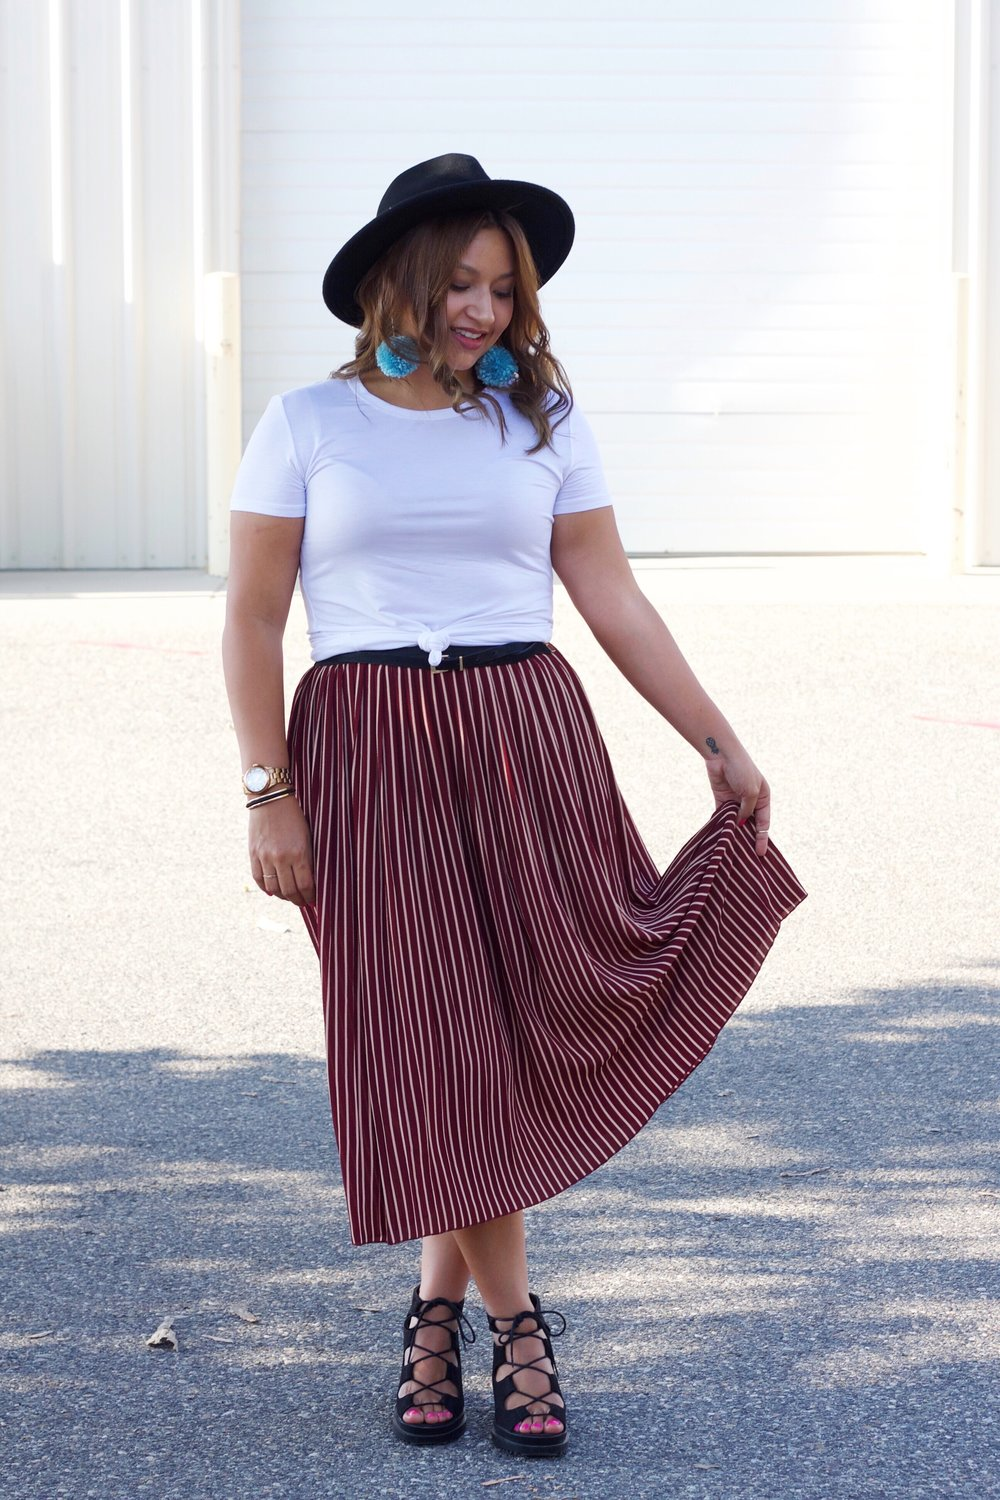 Stripped Midi Skirt and Basic white Tee with Belt detail.